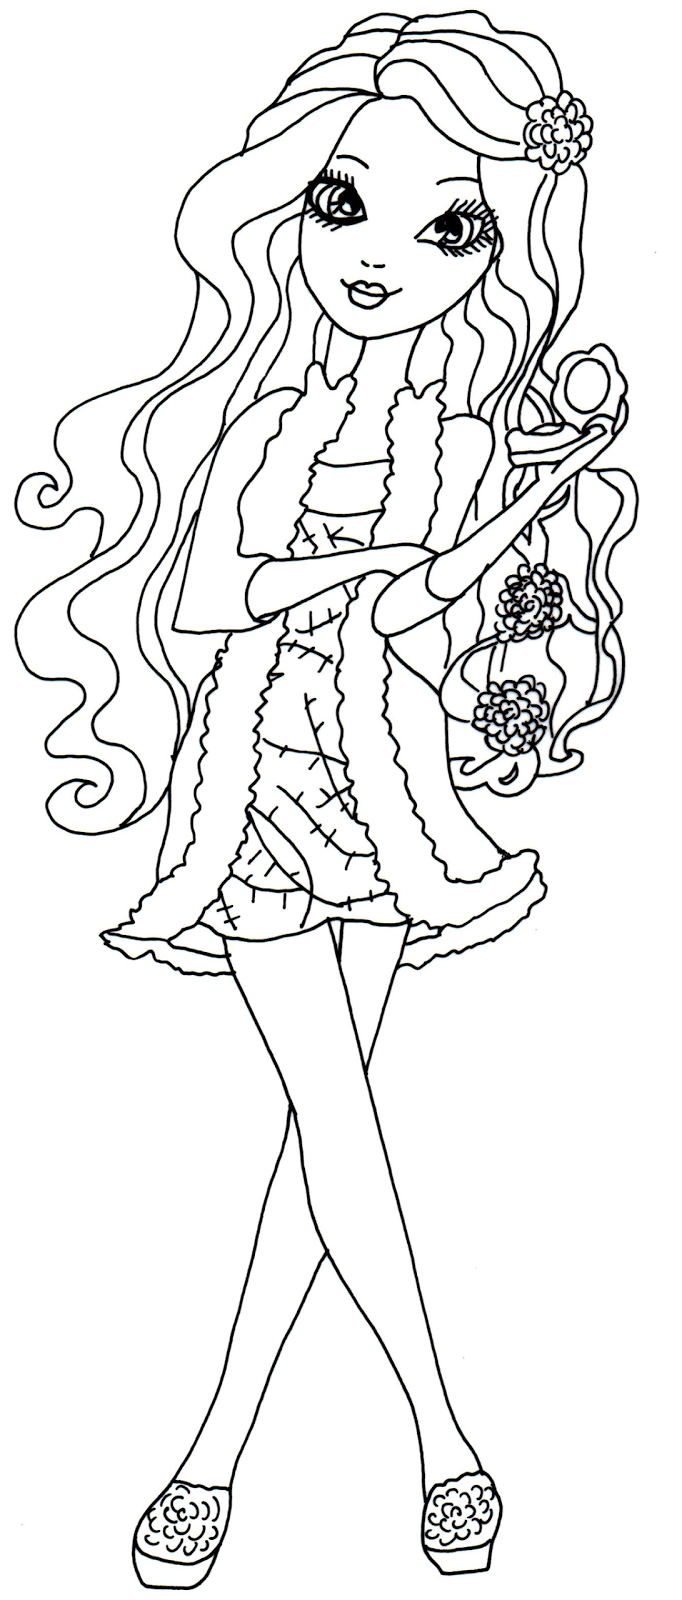 Ever after high coloring pictures - Free Printable Ever After High Coloring Pages Briar Beauty Getting Fairest Coloring Page